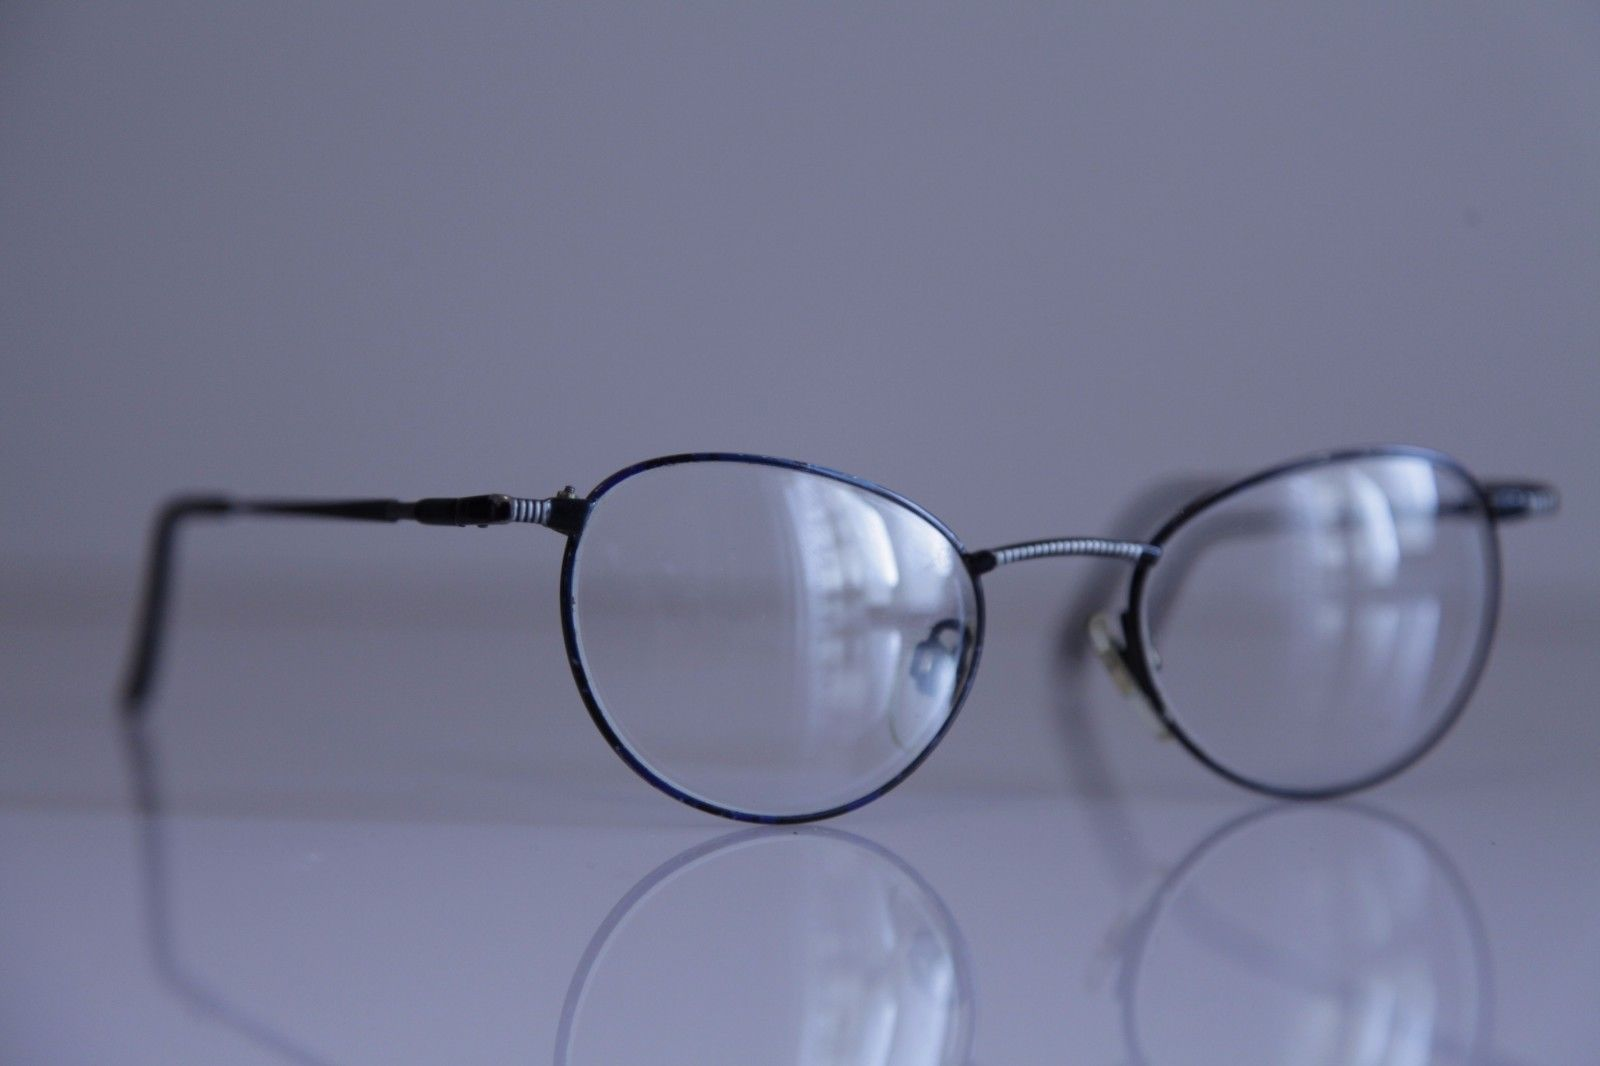 Vintage METZLER Eyewear, Dark Blue Frame, RX-Able  Prescription lenses. GERMANY